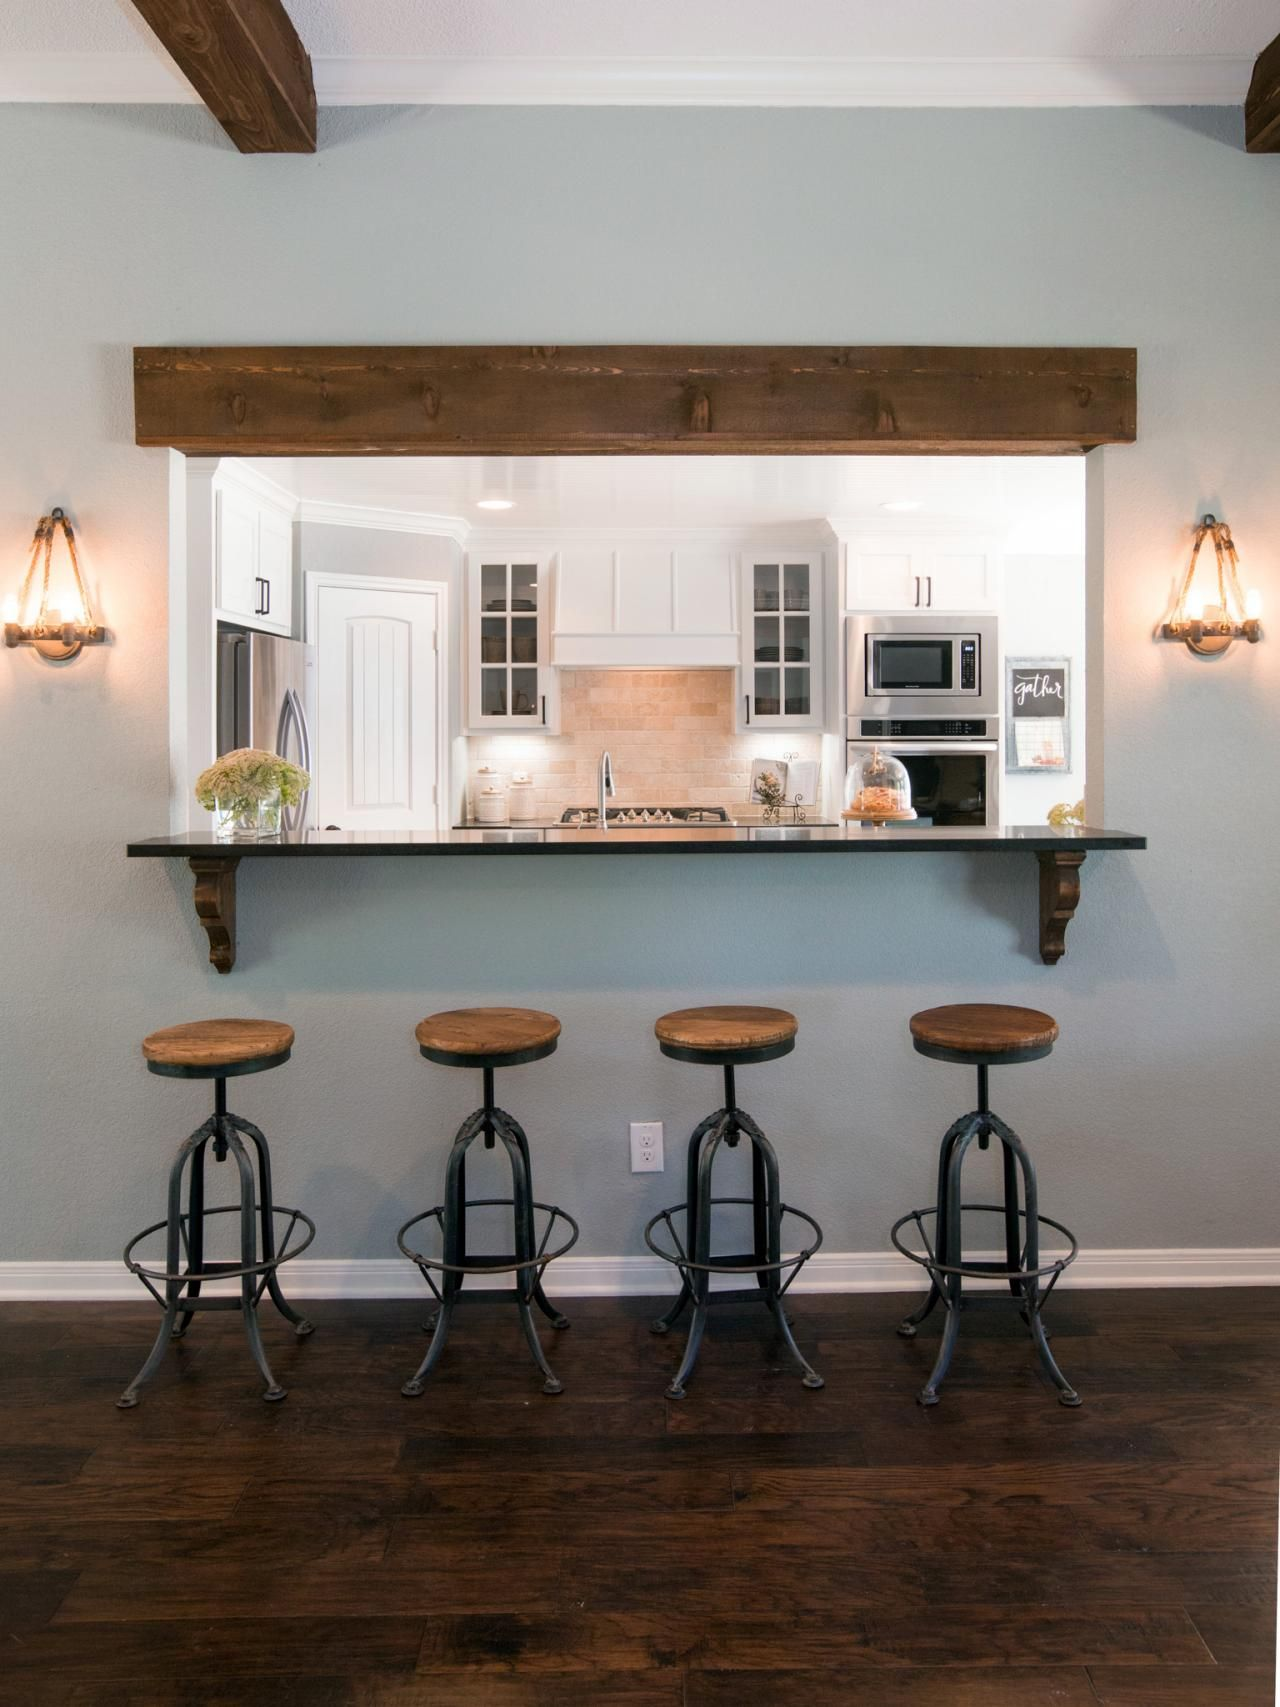 Photos | HGTVu0027s Fixer Upper With Chip And Joanna Gaines | HGTV Kitchen Open  To Living